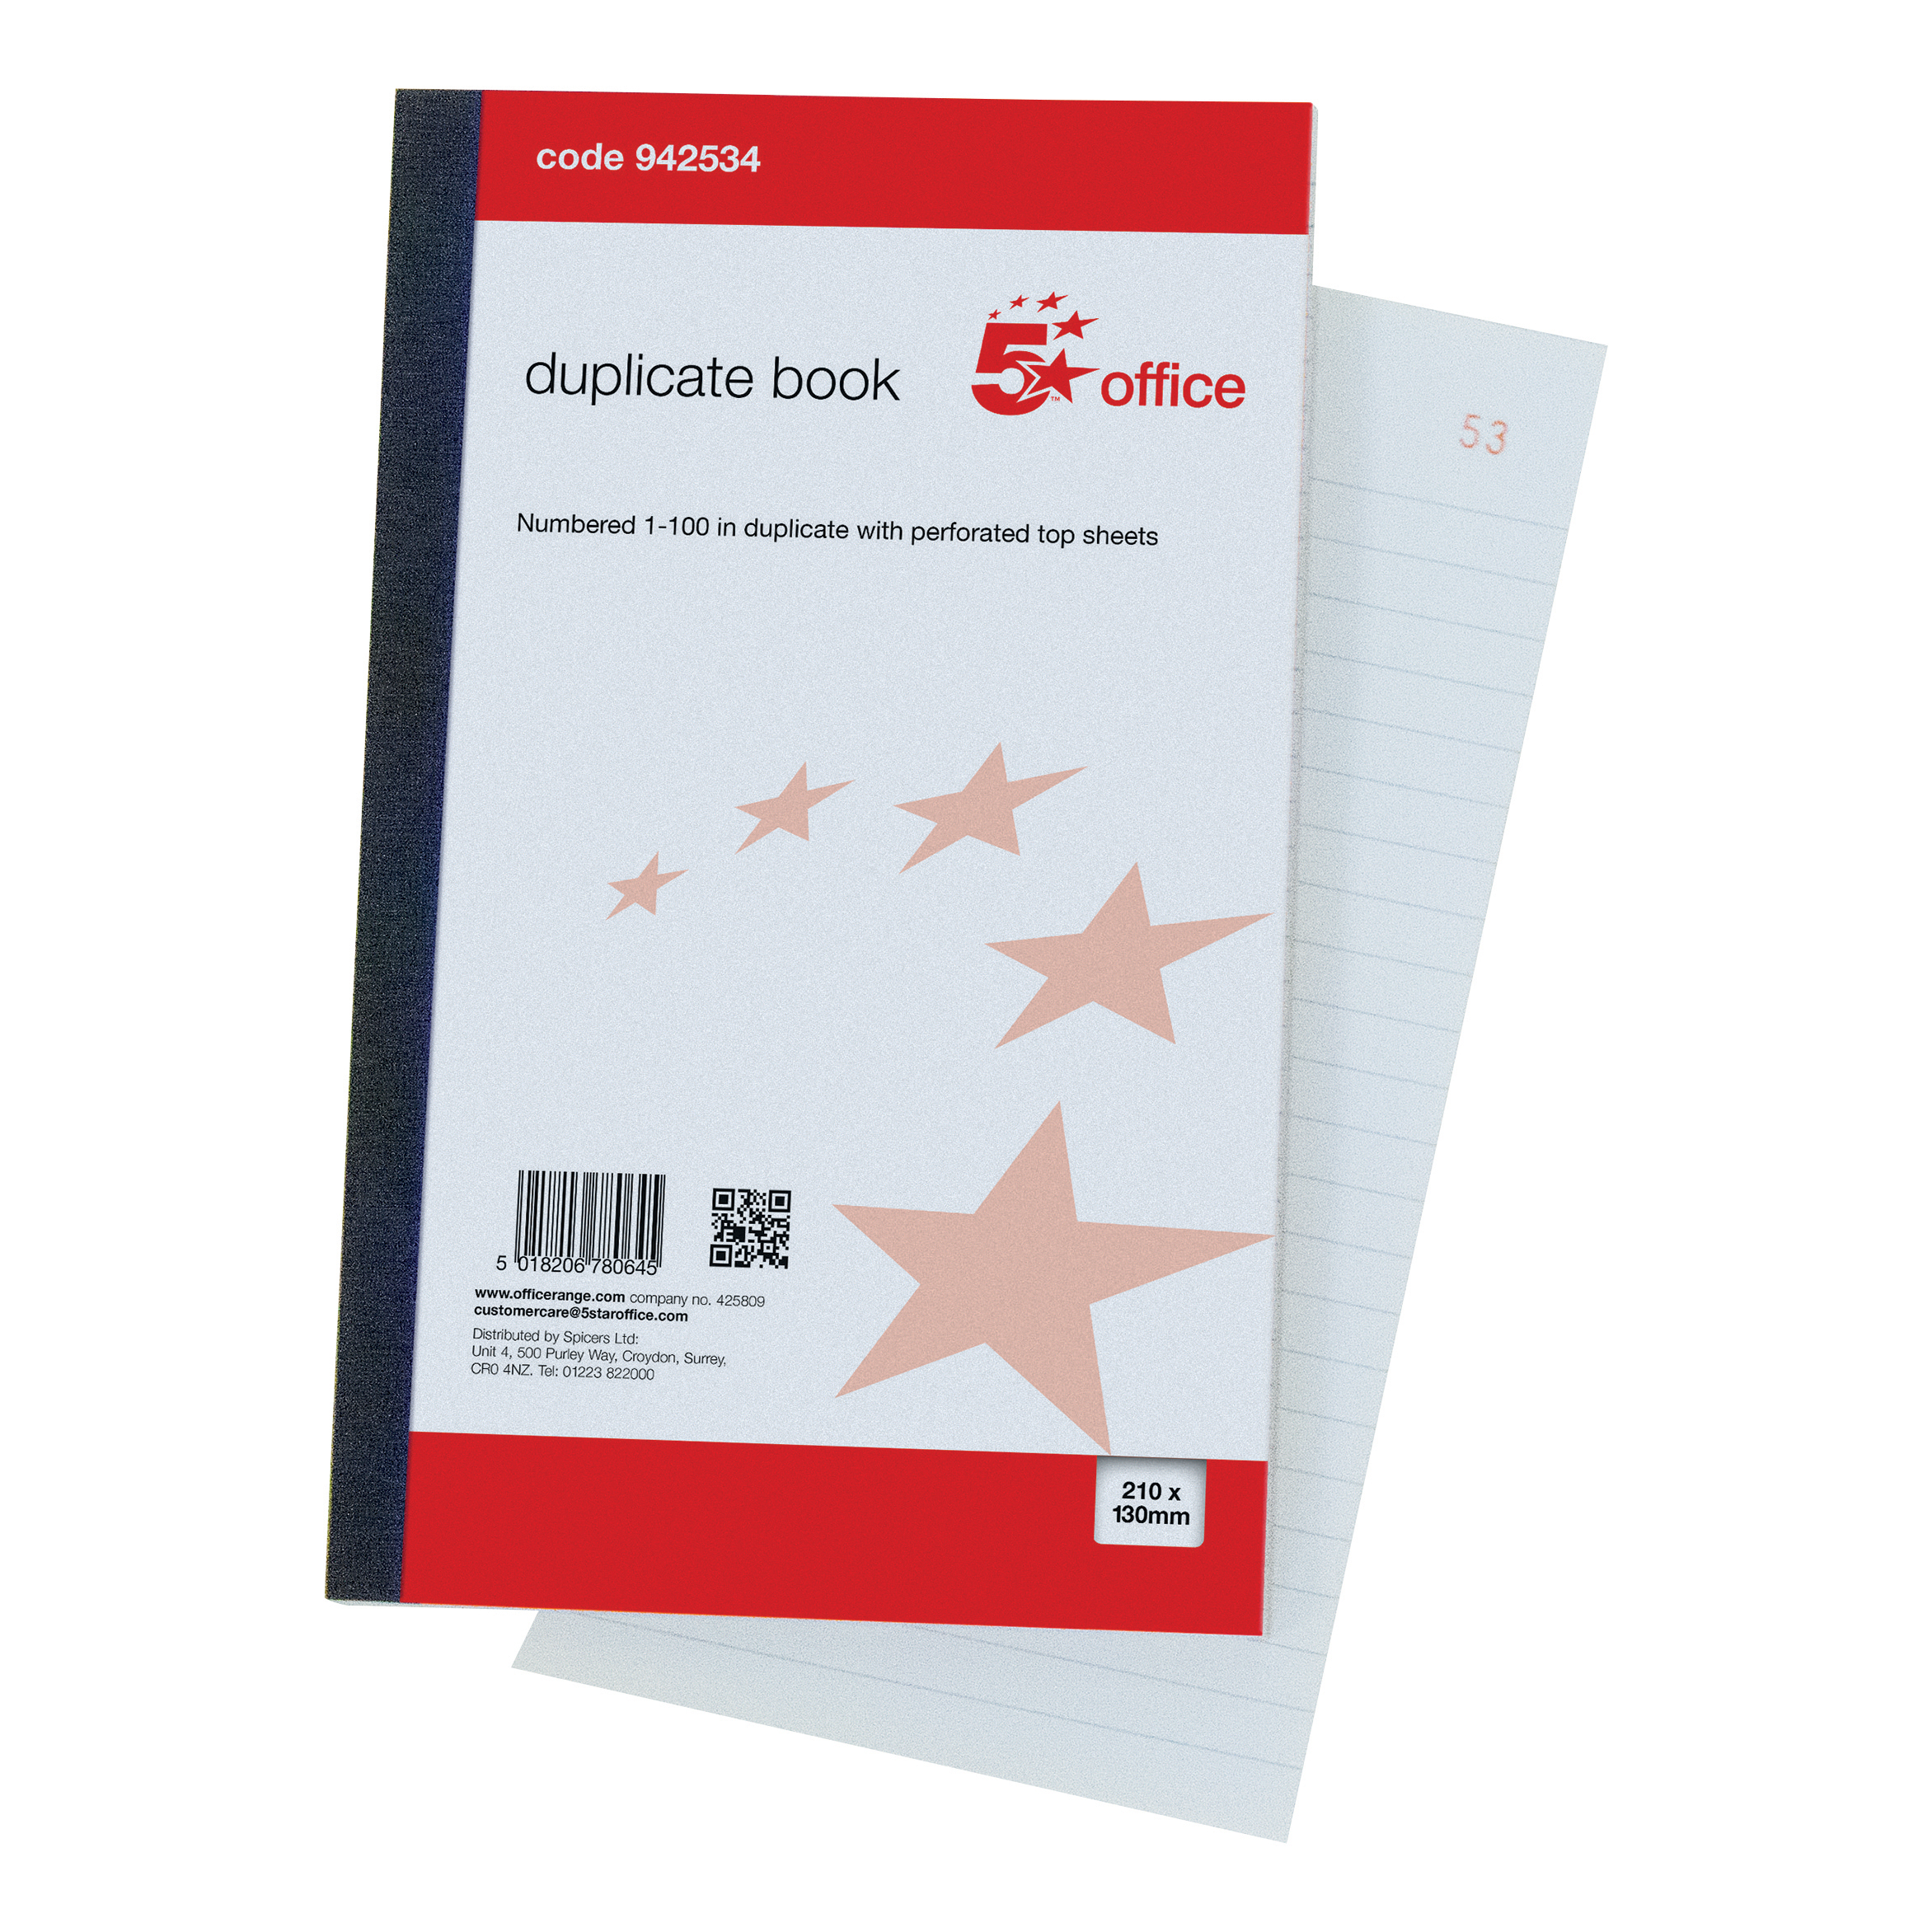 Image for 5 Star Office Duplicate Book with Carbon Ruled Indexed and Perforated 100 Sets 210x130mm